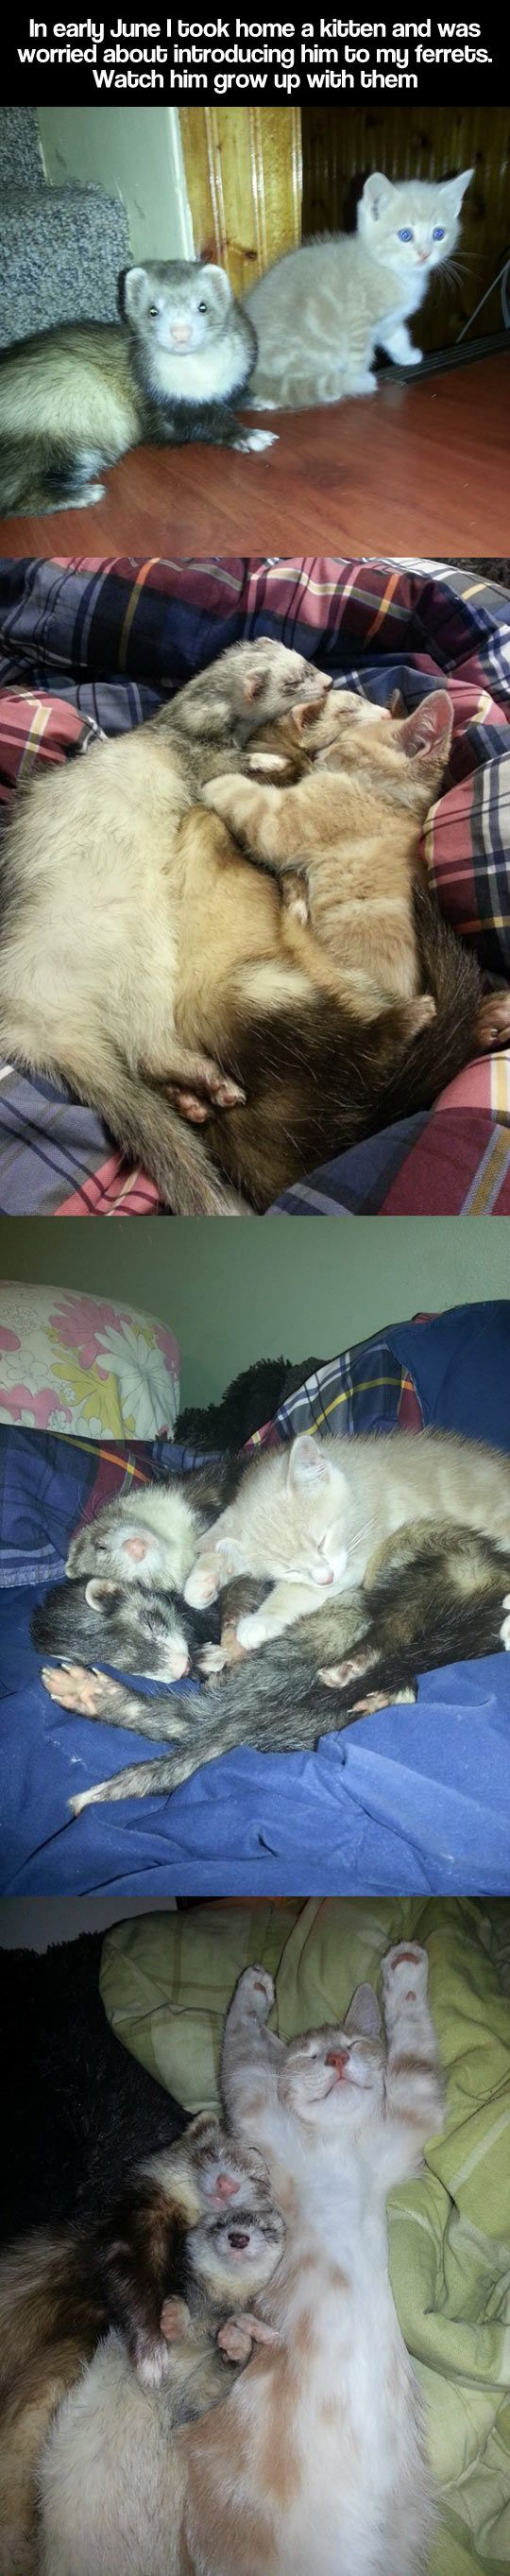 kitten grows up with ferrets *_* @Julianna Moreno okay we can get a kitty, a bunny, & a ferret!